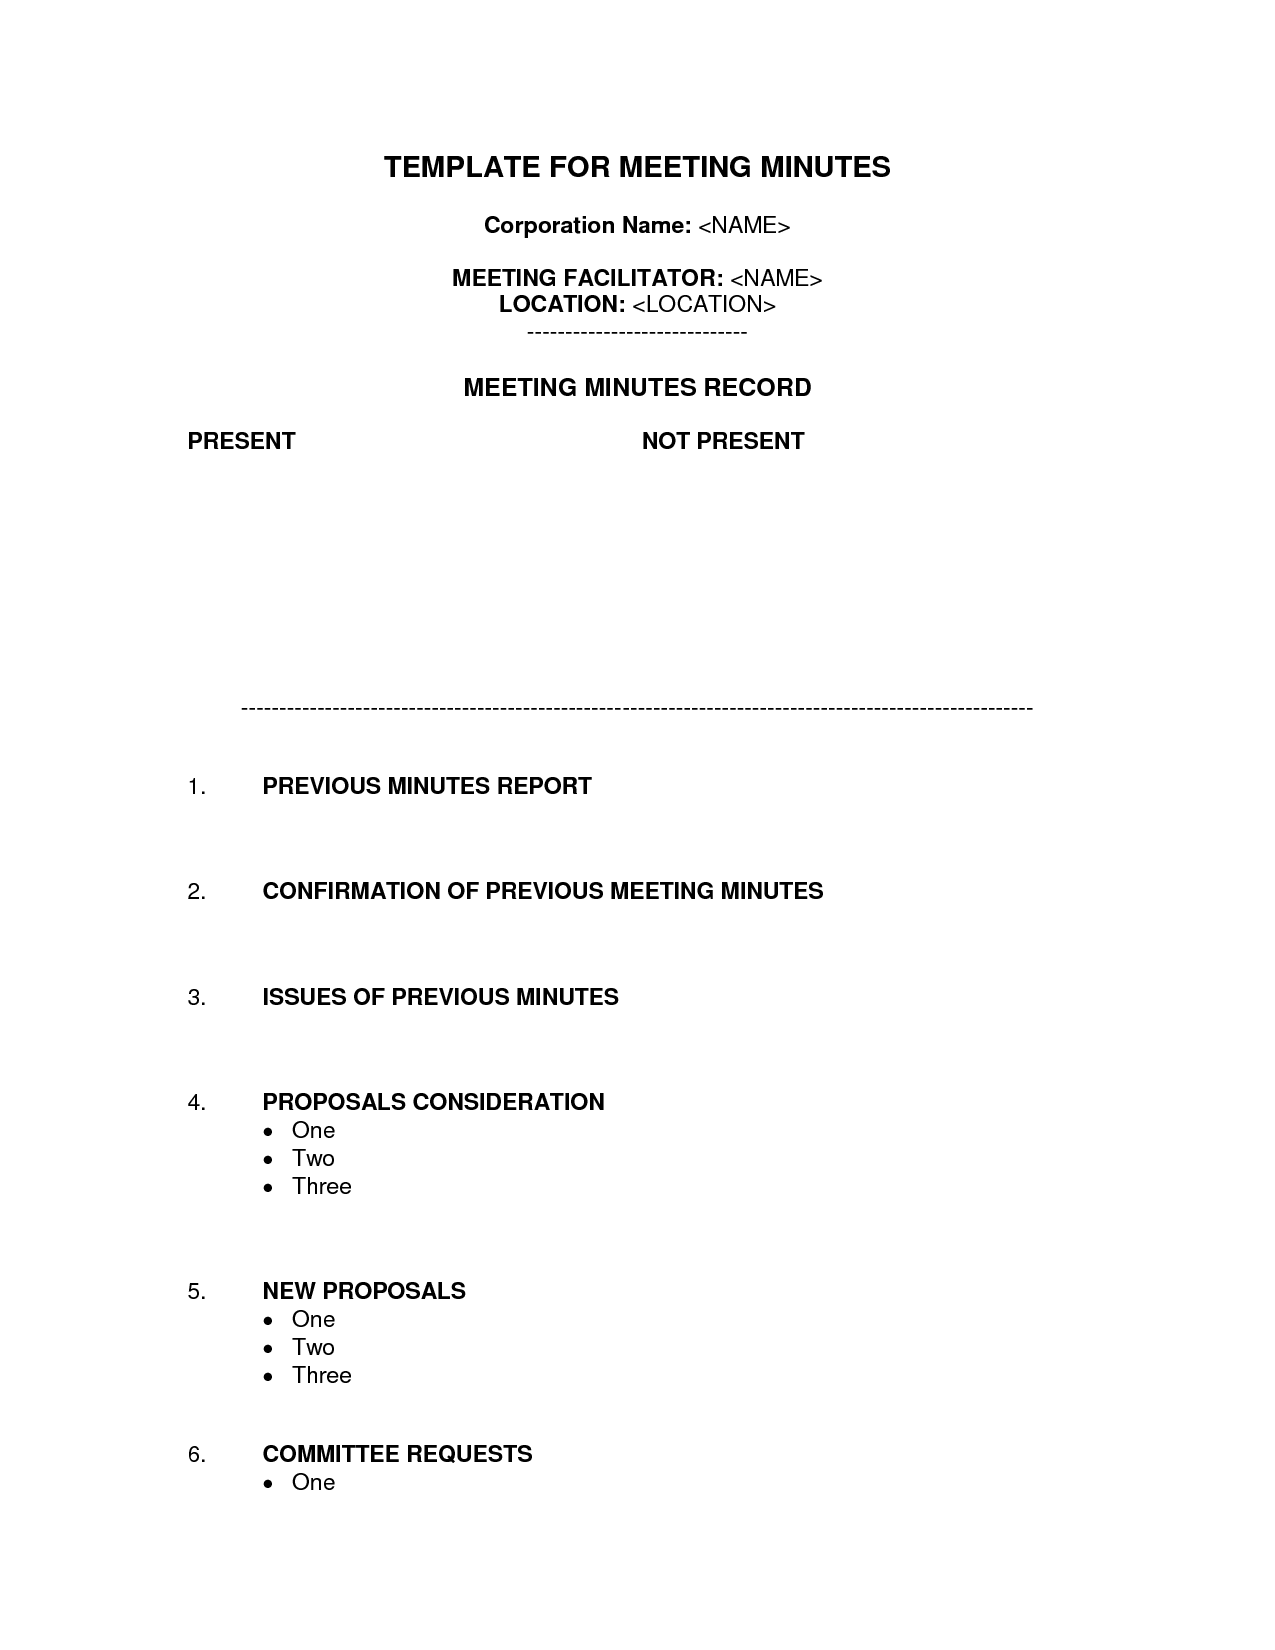 Staff Meeting Minutes Template Word | Bagnas - corporation meeting ...